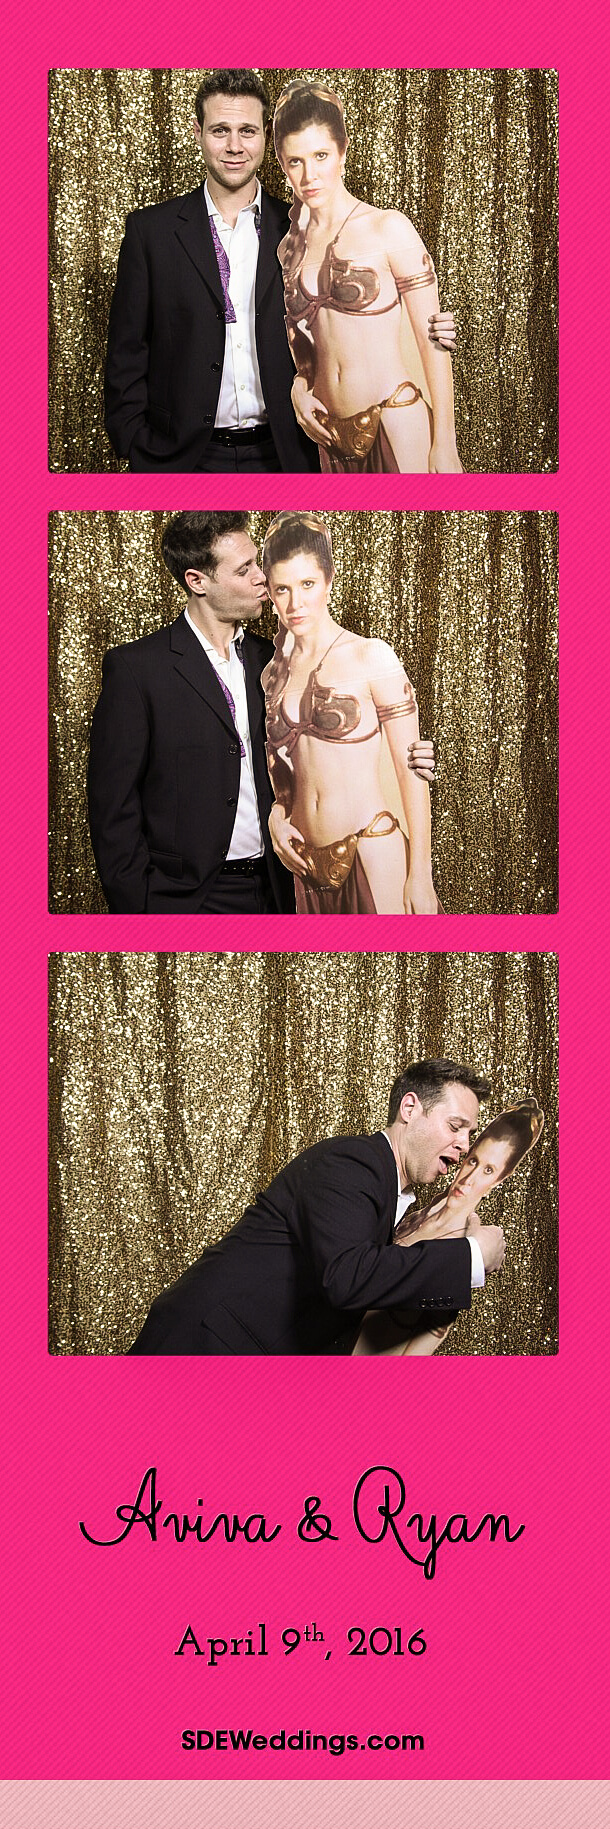 Art Gallery of Ontario AGO Wedding Photo Booth Rental 4